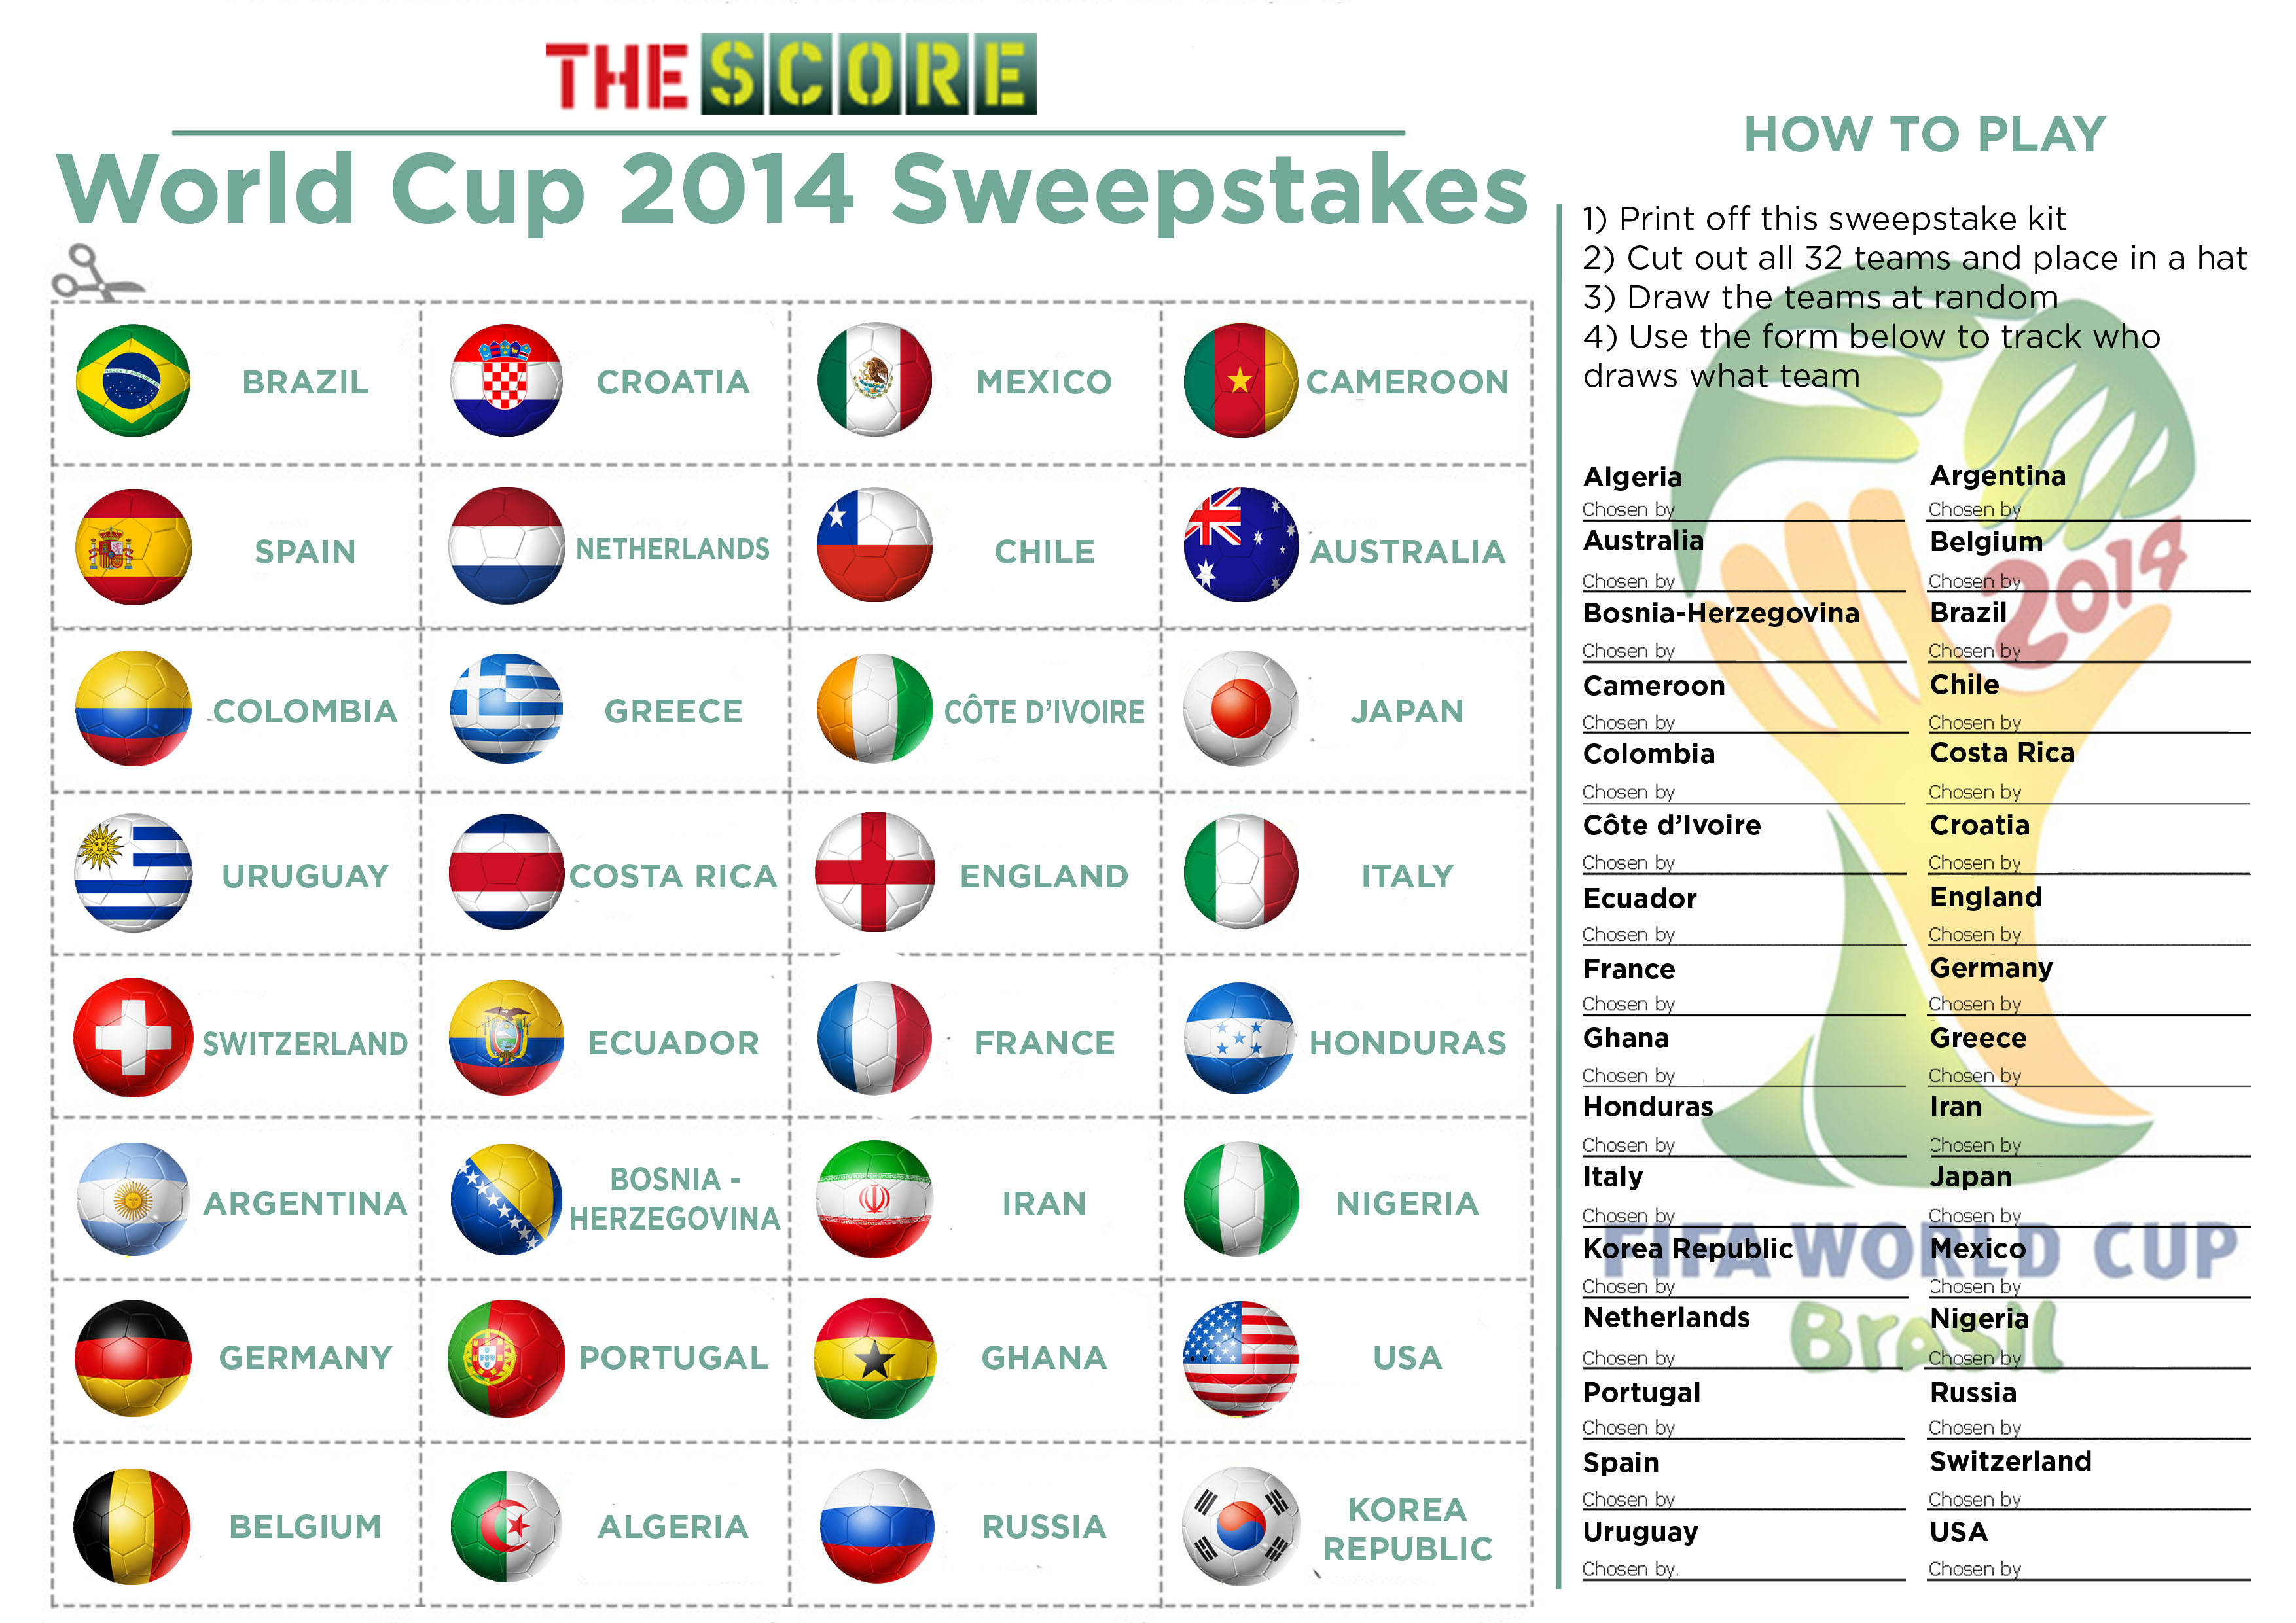 From Après Match to Zidane: The A-Z of the World Cup · The42